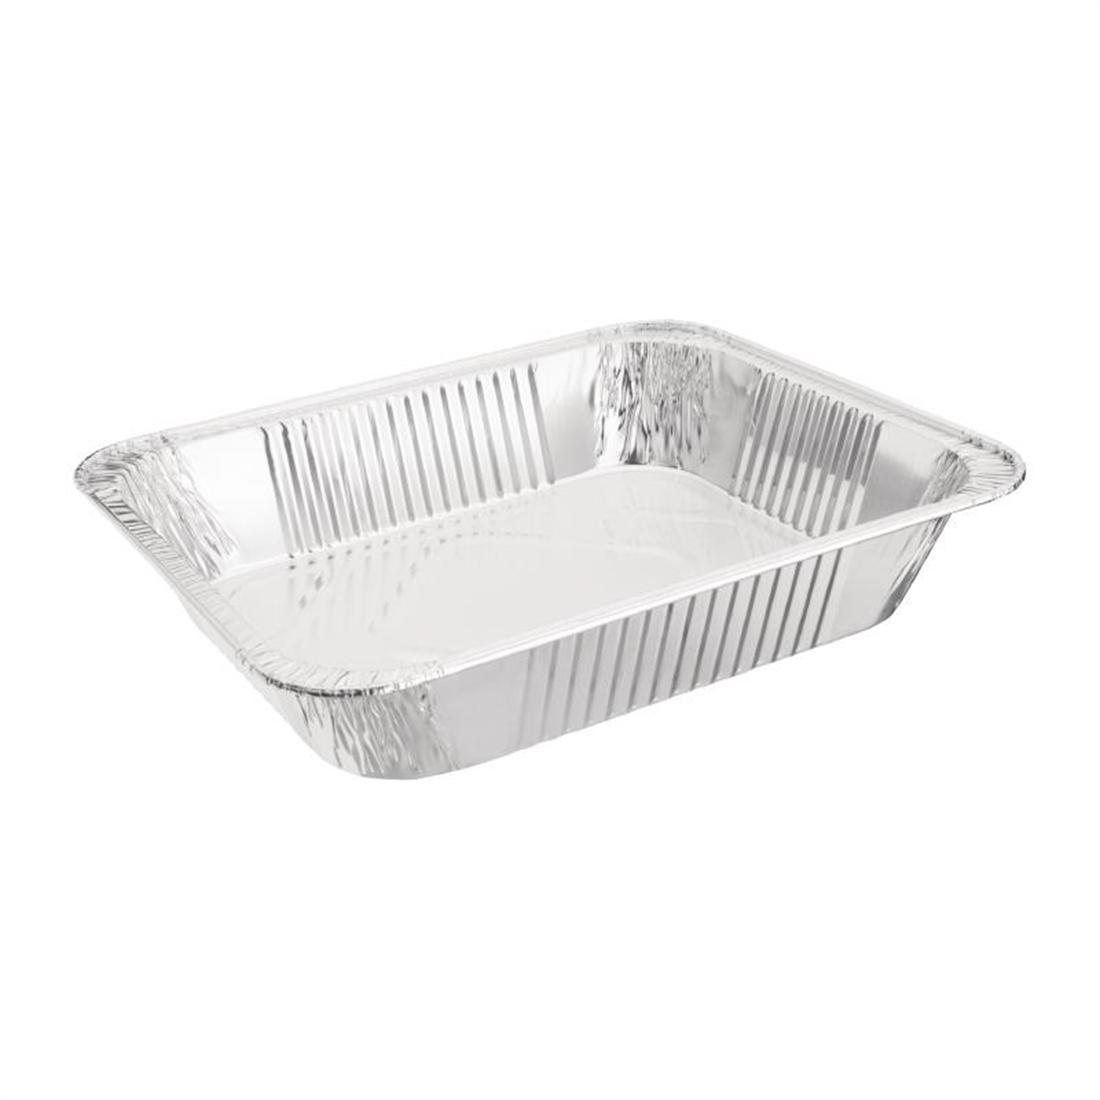 Fiesta Rectangular Foil Containers 1/2 GN